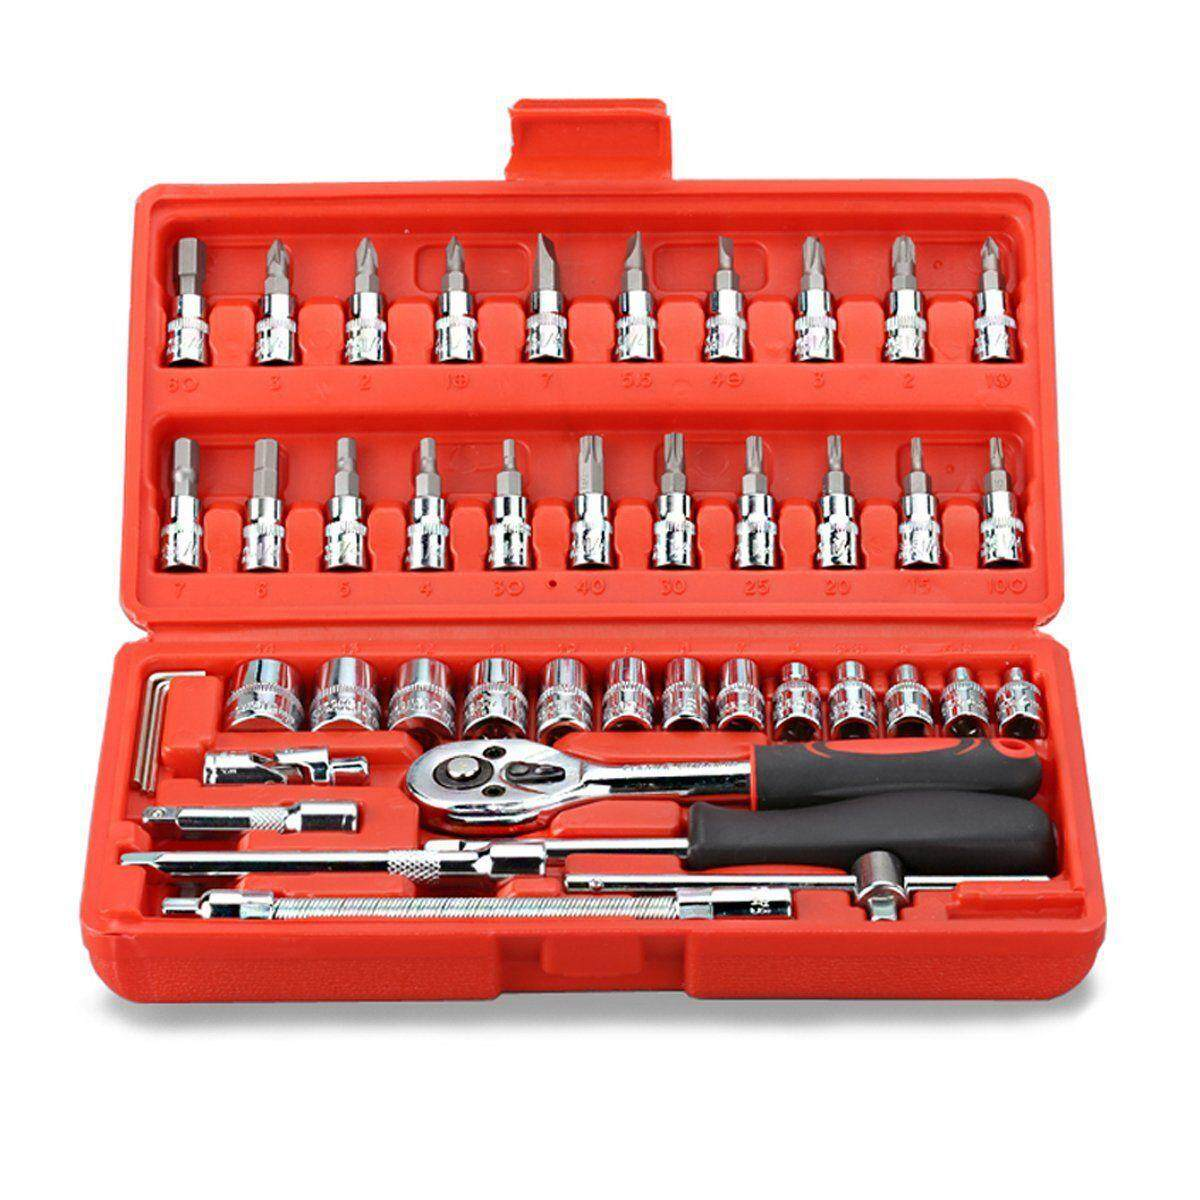 46pcs 1/4-Inch Socket Set Car Repair Tool Ratchet Torque Wrench Combo Tools Kit Auto Repairing - Intl By Sunnny2015.